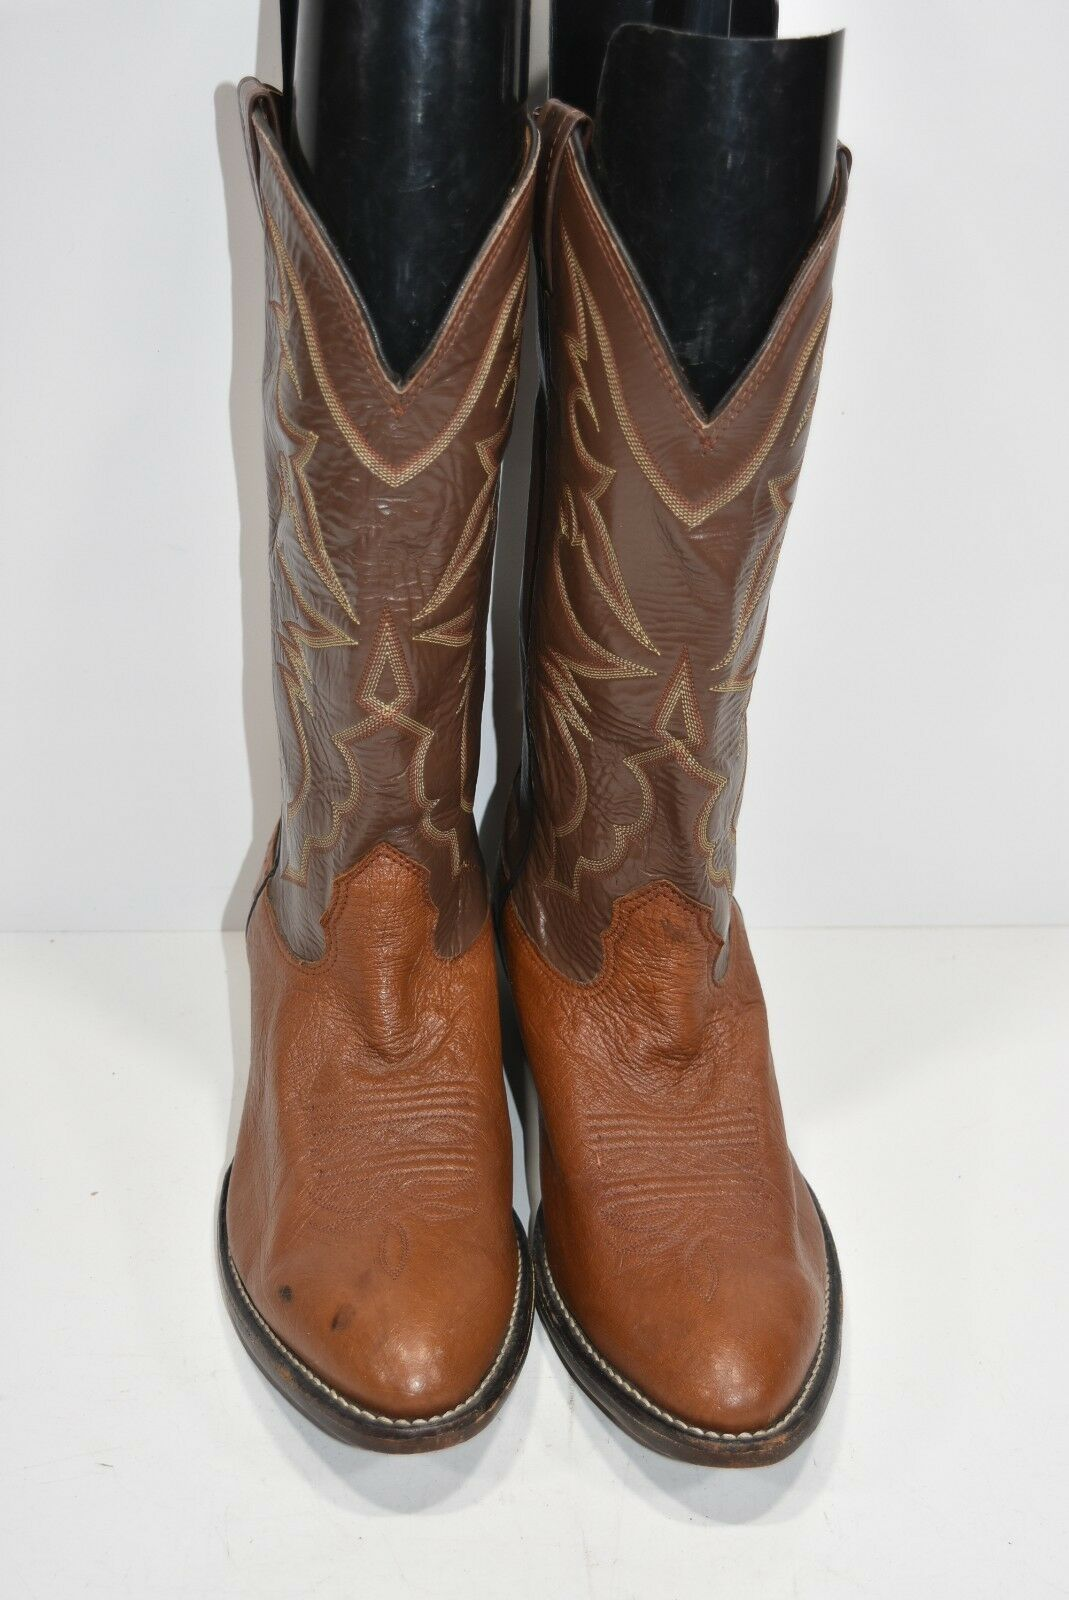 LARRY MAHAN VINTAGE Uomo 11 D SMOOTH OSTRICH BROWN BOOTS LEATHER WESTERN COWBOY BOOTS BROWN 510235